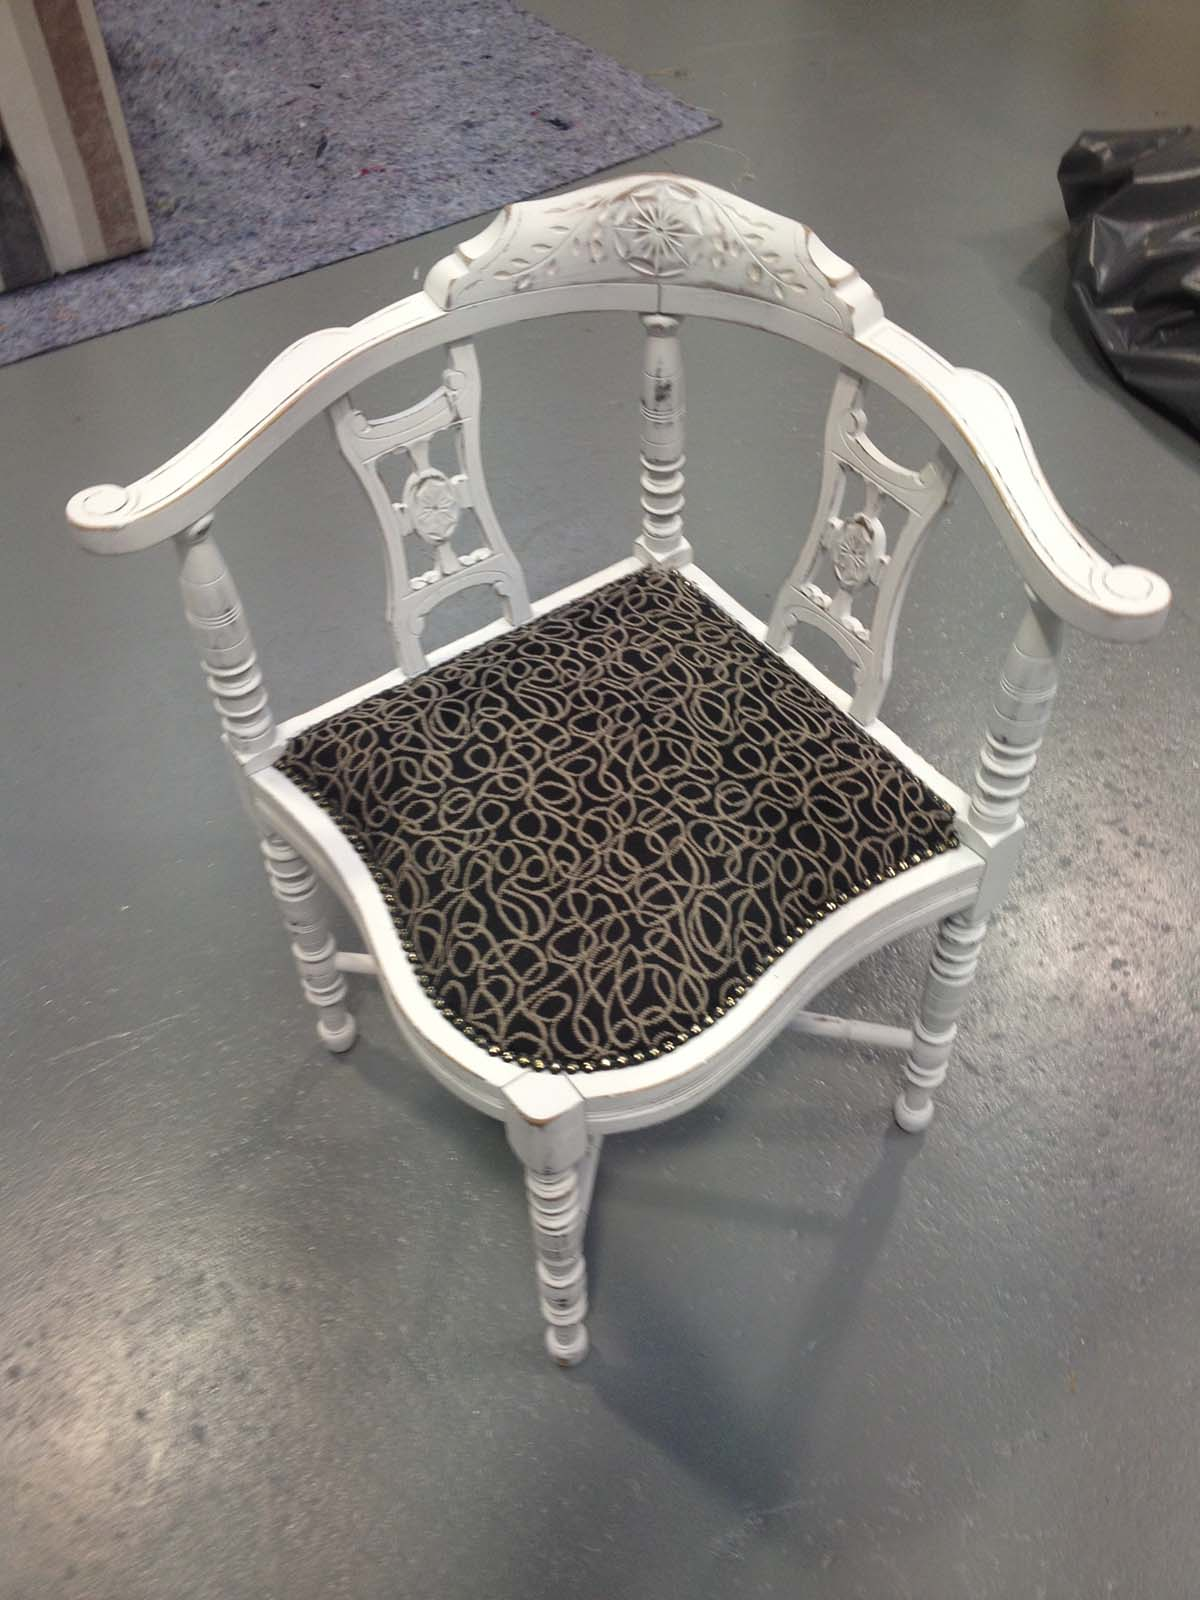 Antique corner Chair finished with a distressed white paint and black and white scrolled fabric.